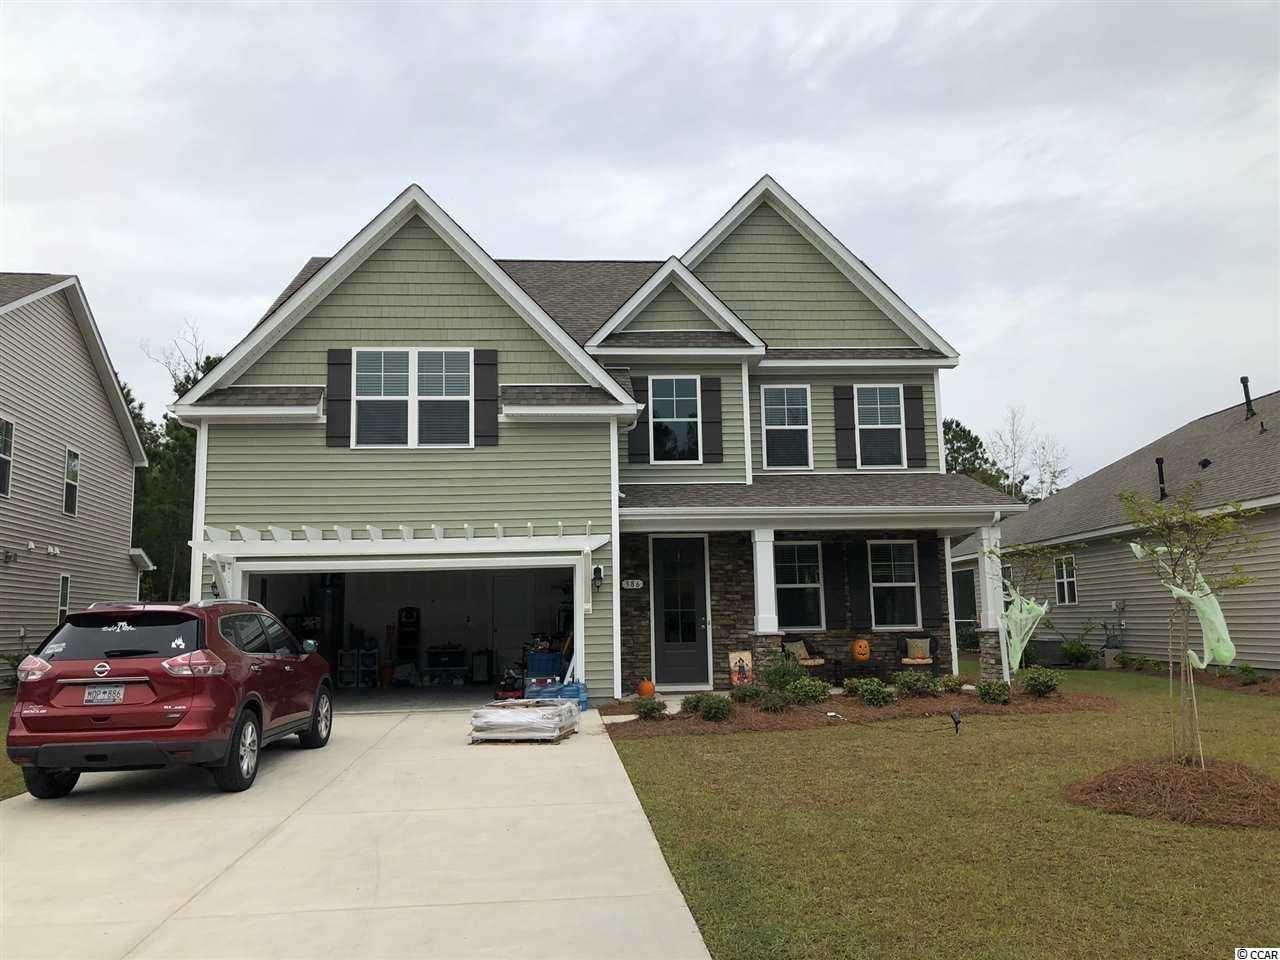 386 Flowering Branch Ave. Little River, SC 29566 | MLS 1723942 Photo 1